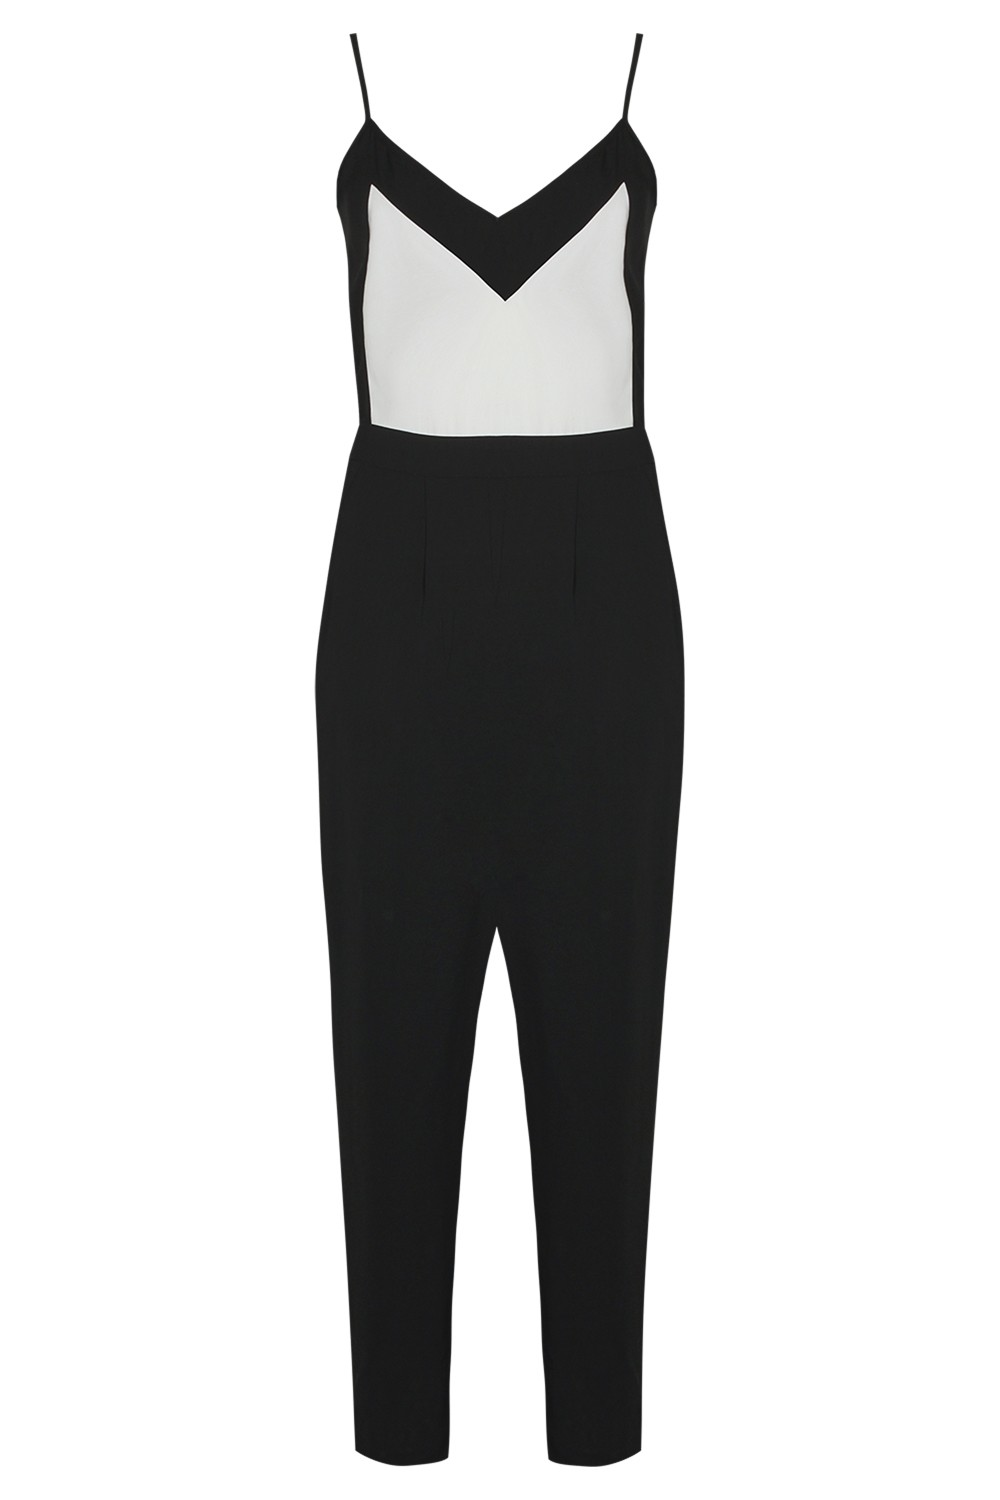 BOOHOO BOUTIQUE Lila Cami Top Narrow Leg Jumpsuit $80.00